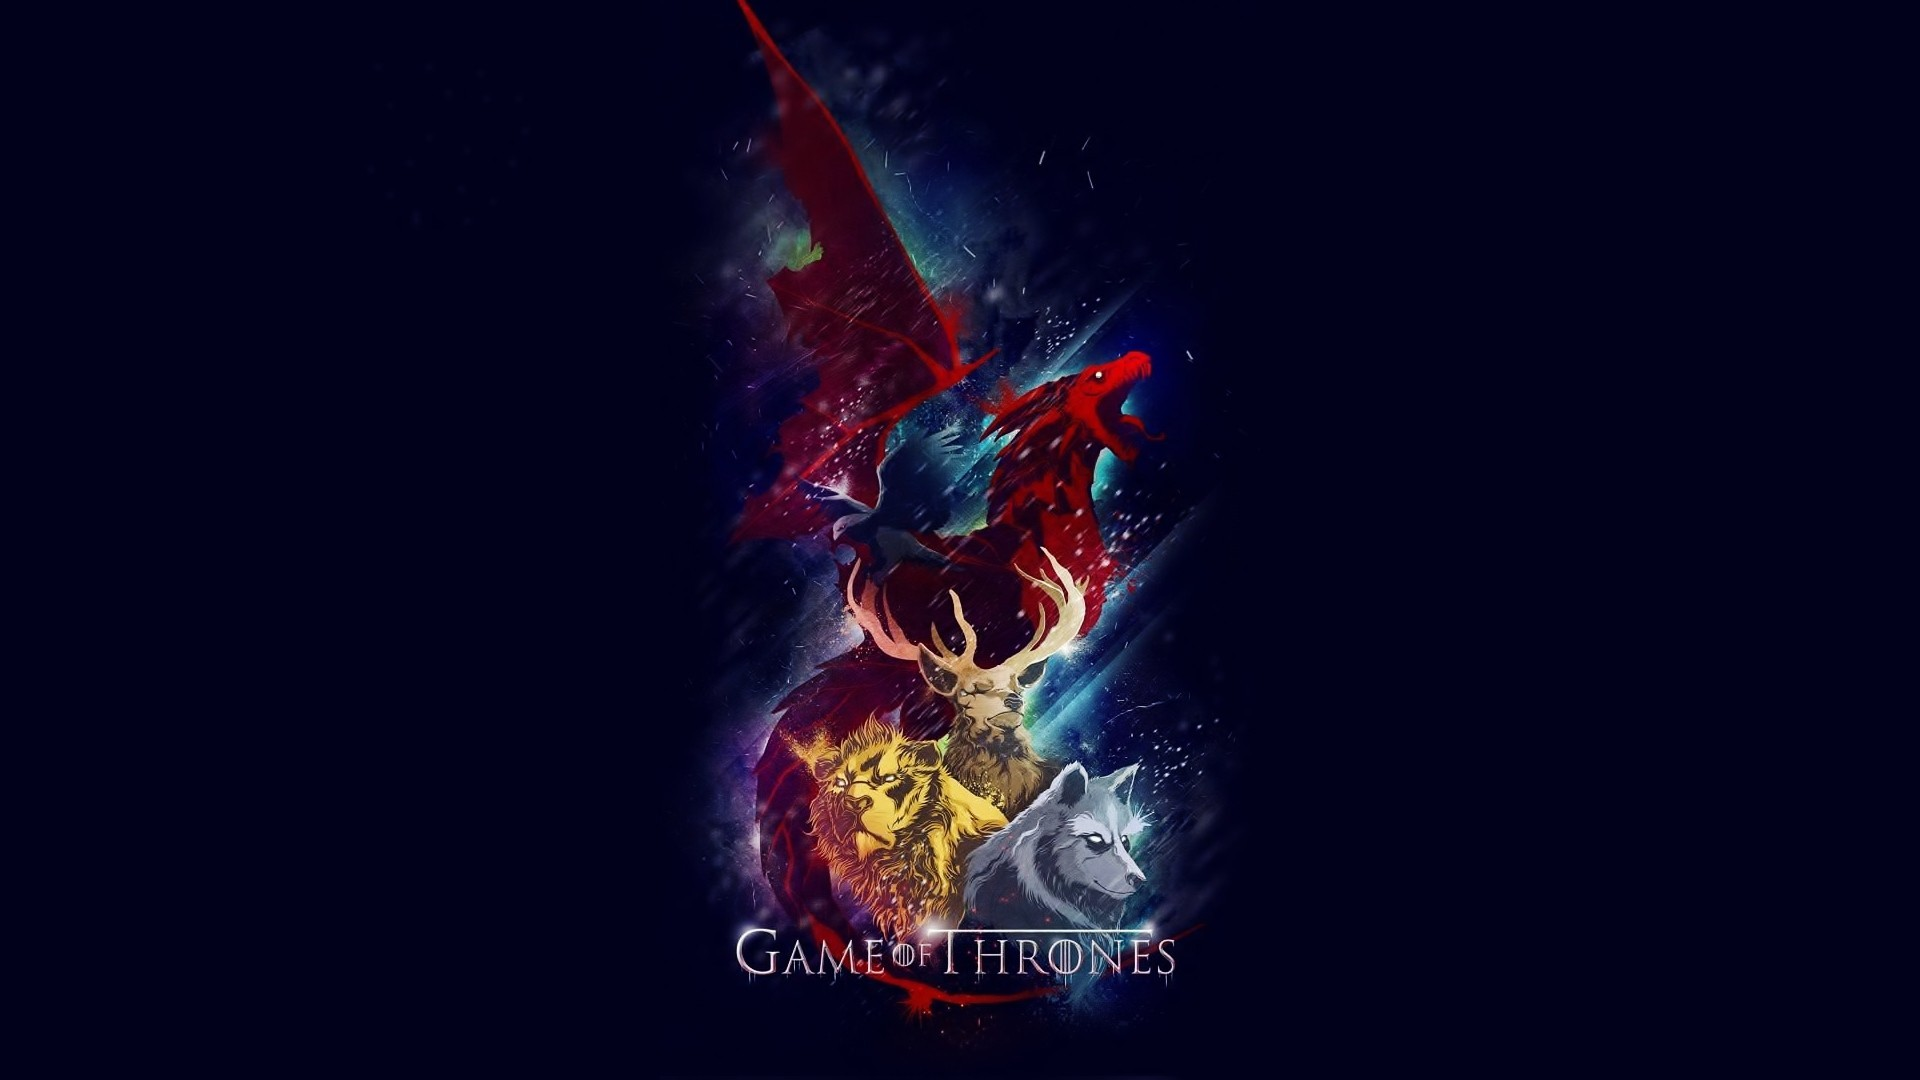 Game Of Thrones Wallpaper Houses 1920x1080 Backgrounds